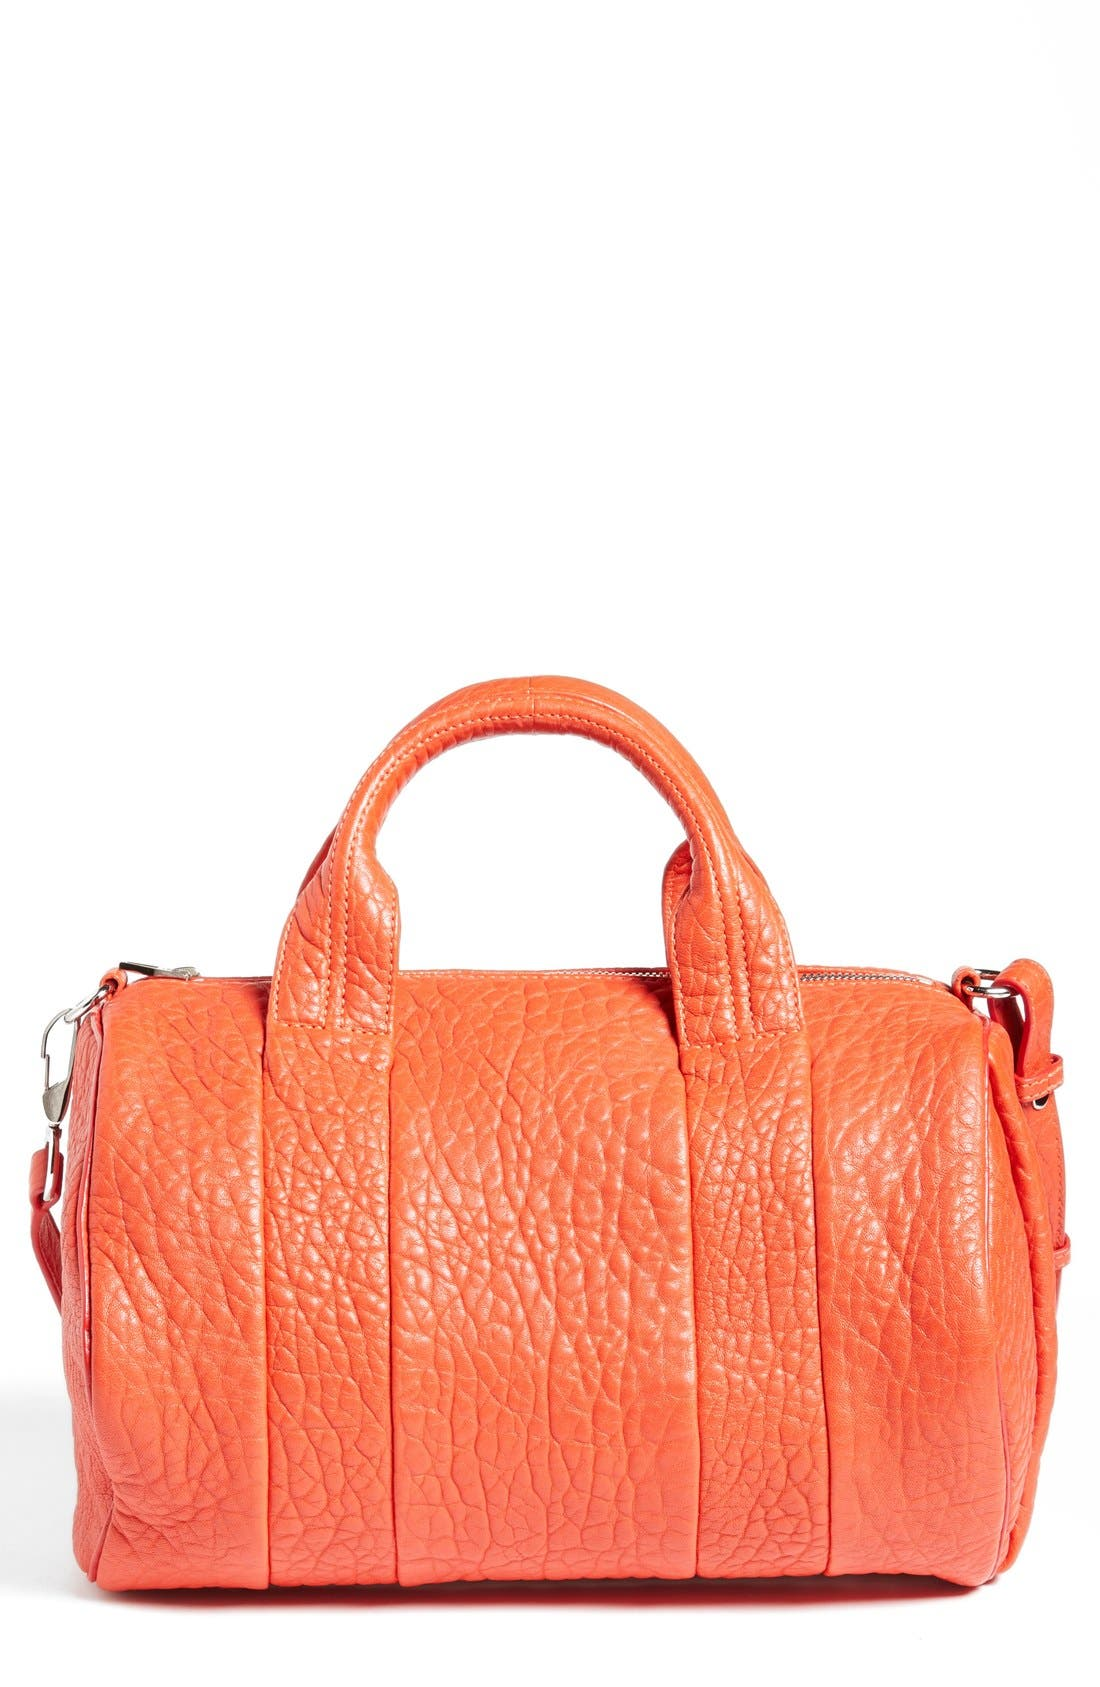 Alternate Image 1 Selected - Alexander Wang 'Rocco - Dumbo Nickel' Lambskin Leather Satchel